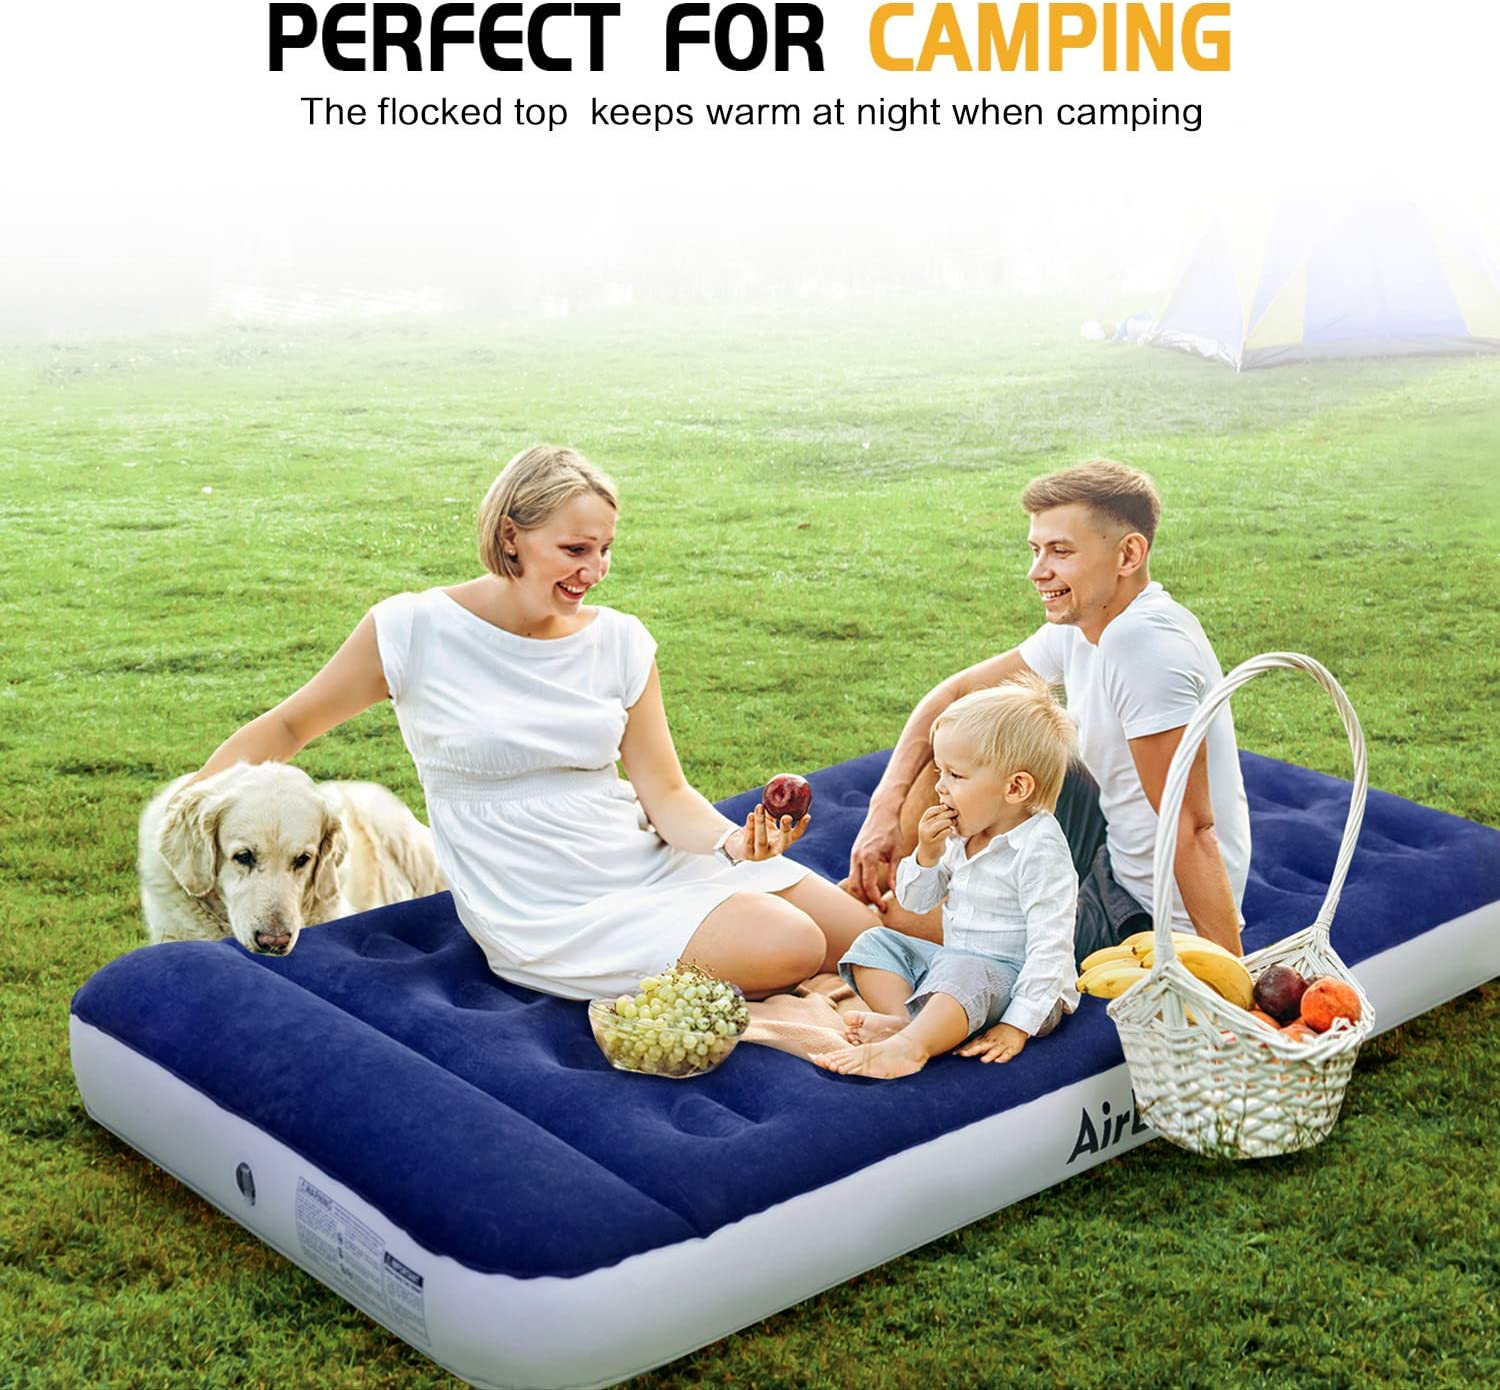 """AirExpect Air Mattress Camping AirBed Queen & Twin Size Leak Proof Inflatable Mattress with Rechargeable Electric Pump Built-in Pillow for Guest, Camping, Hiking, Height 9"""", Storage Bag : Sports & Outdoors"""